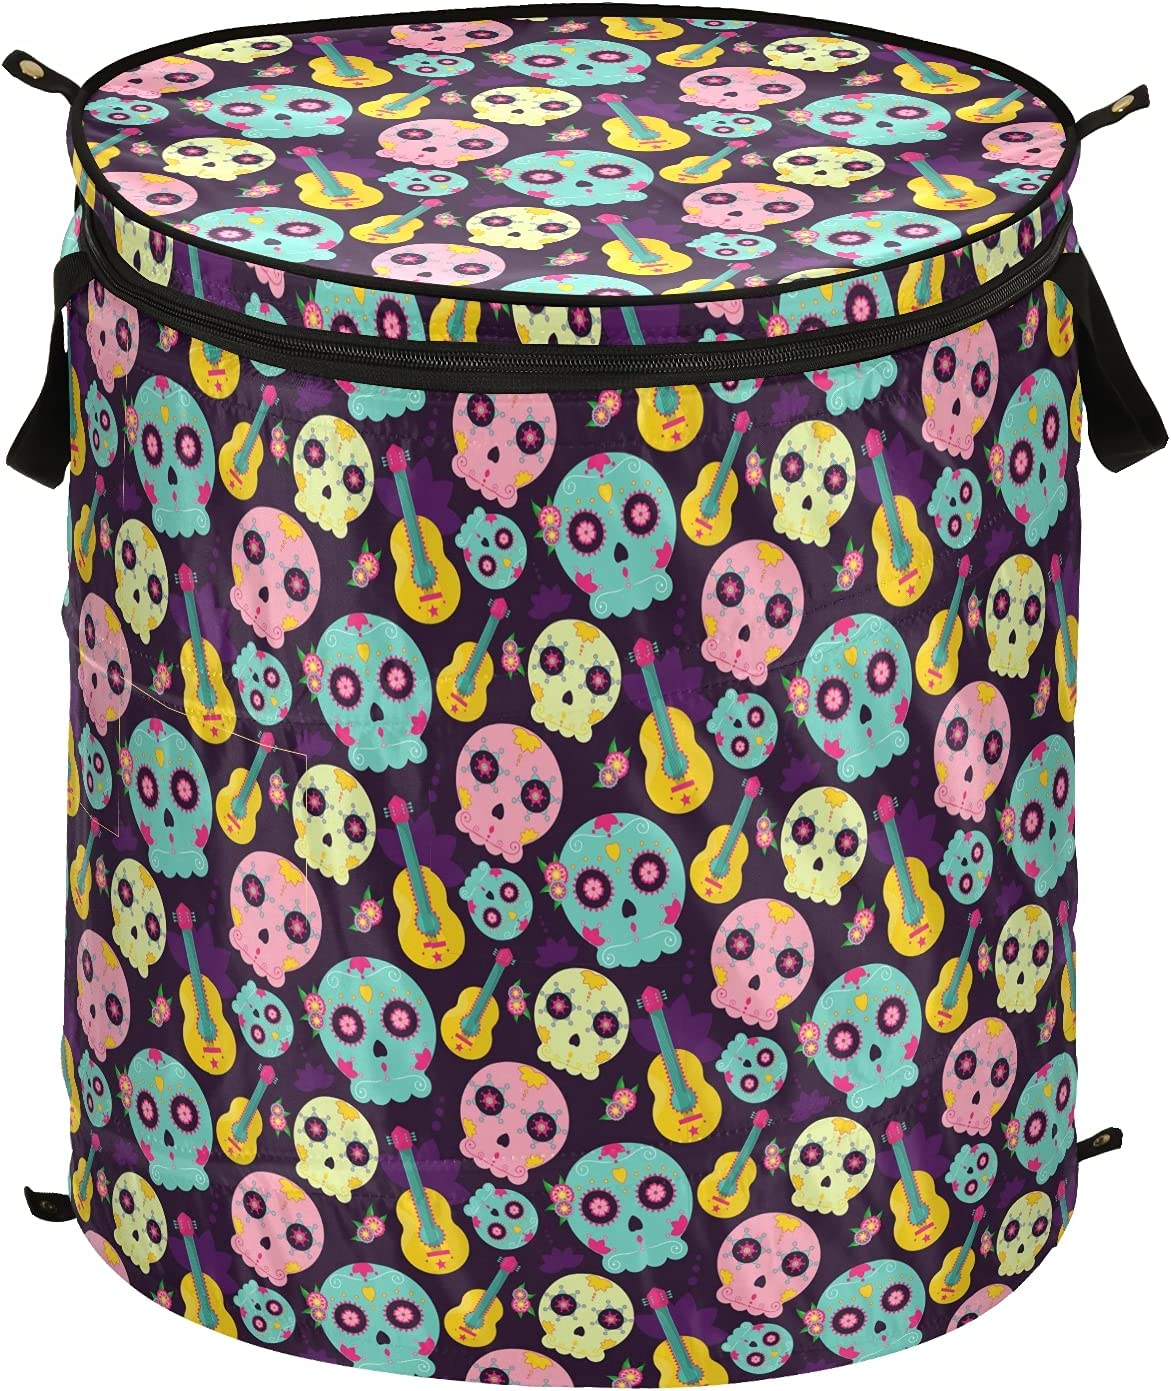 Dead Choice Day Sugar Skull Halloween Pop Up Laundry Fo Lid with Hamper Max 83% OFF